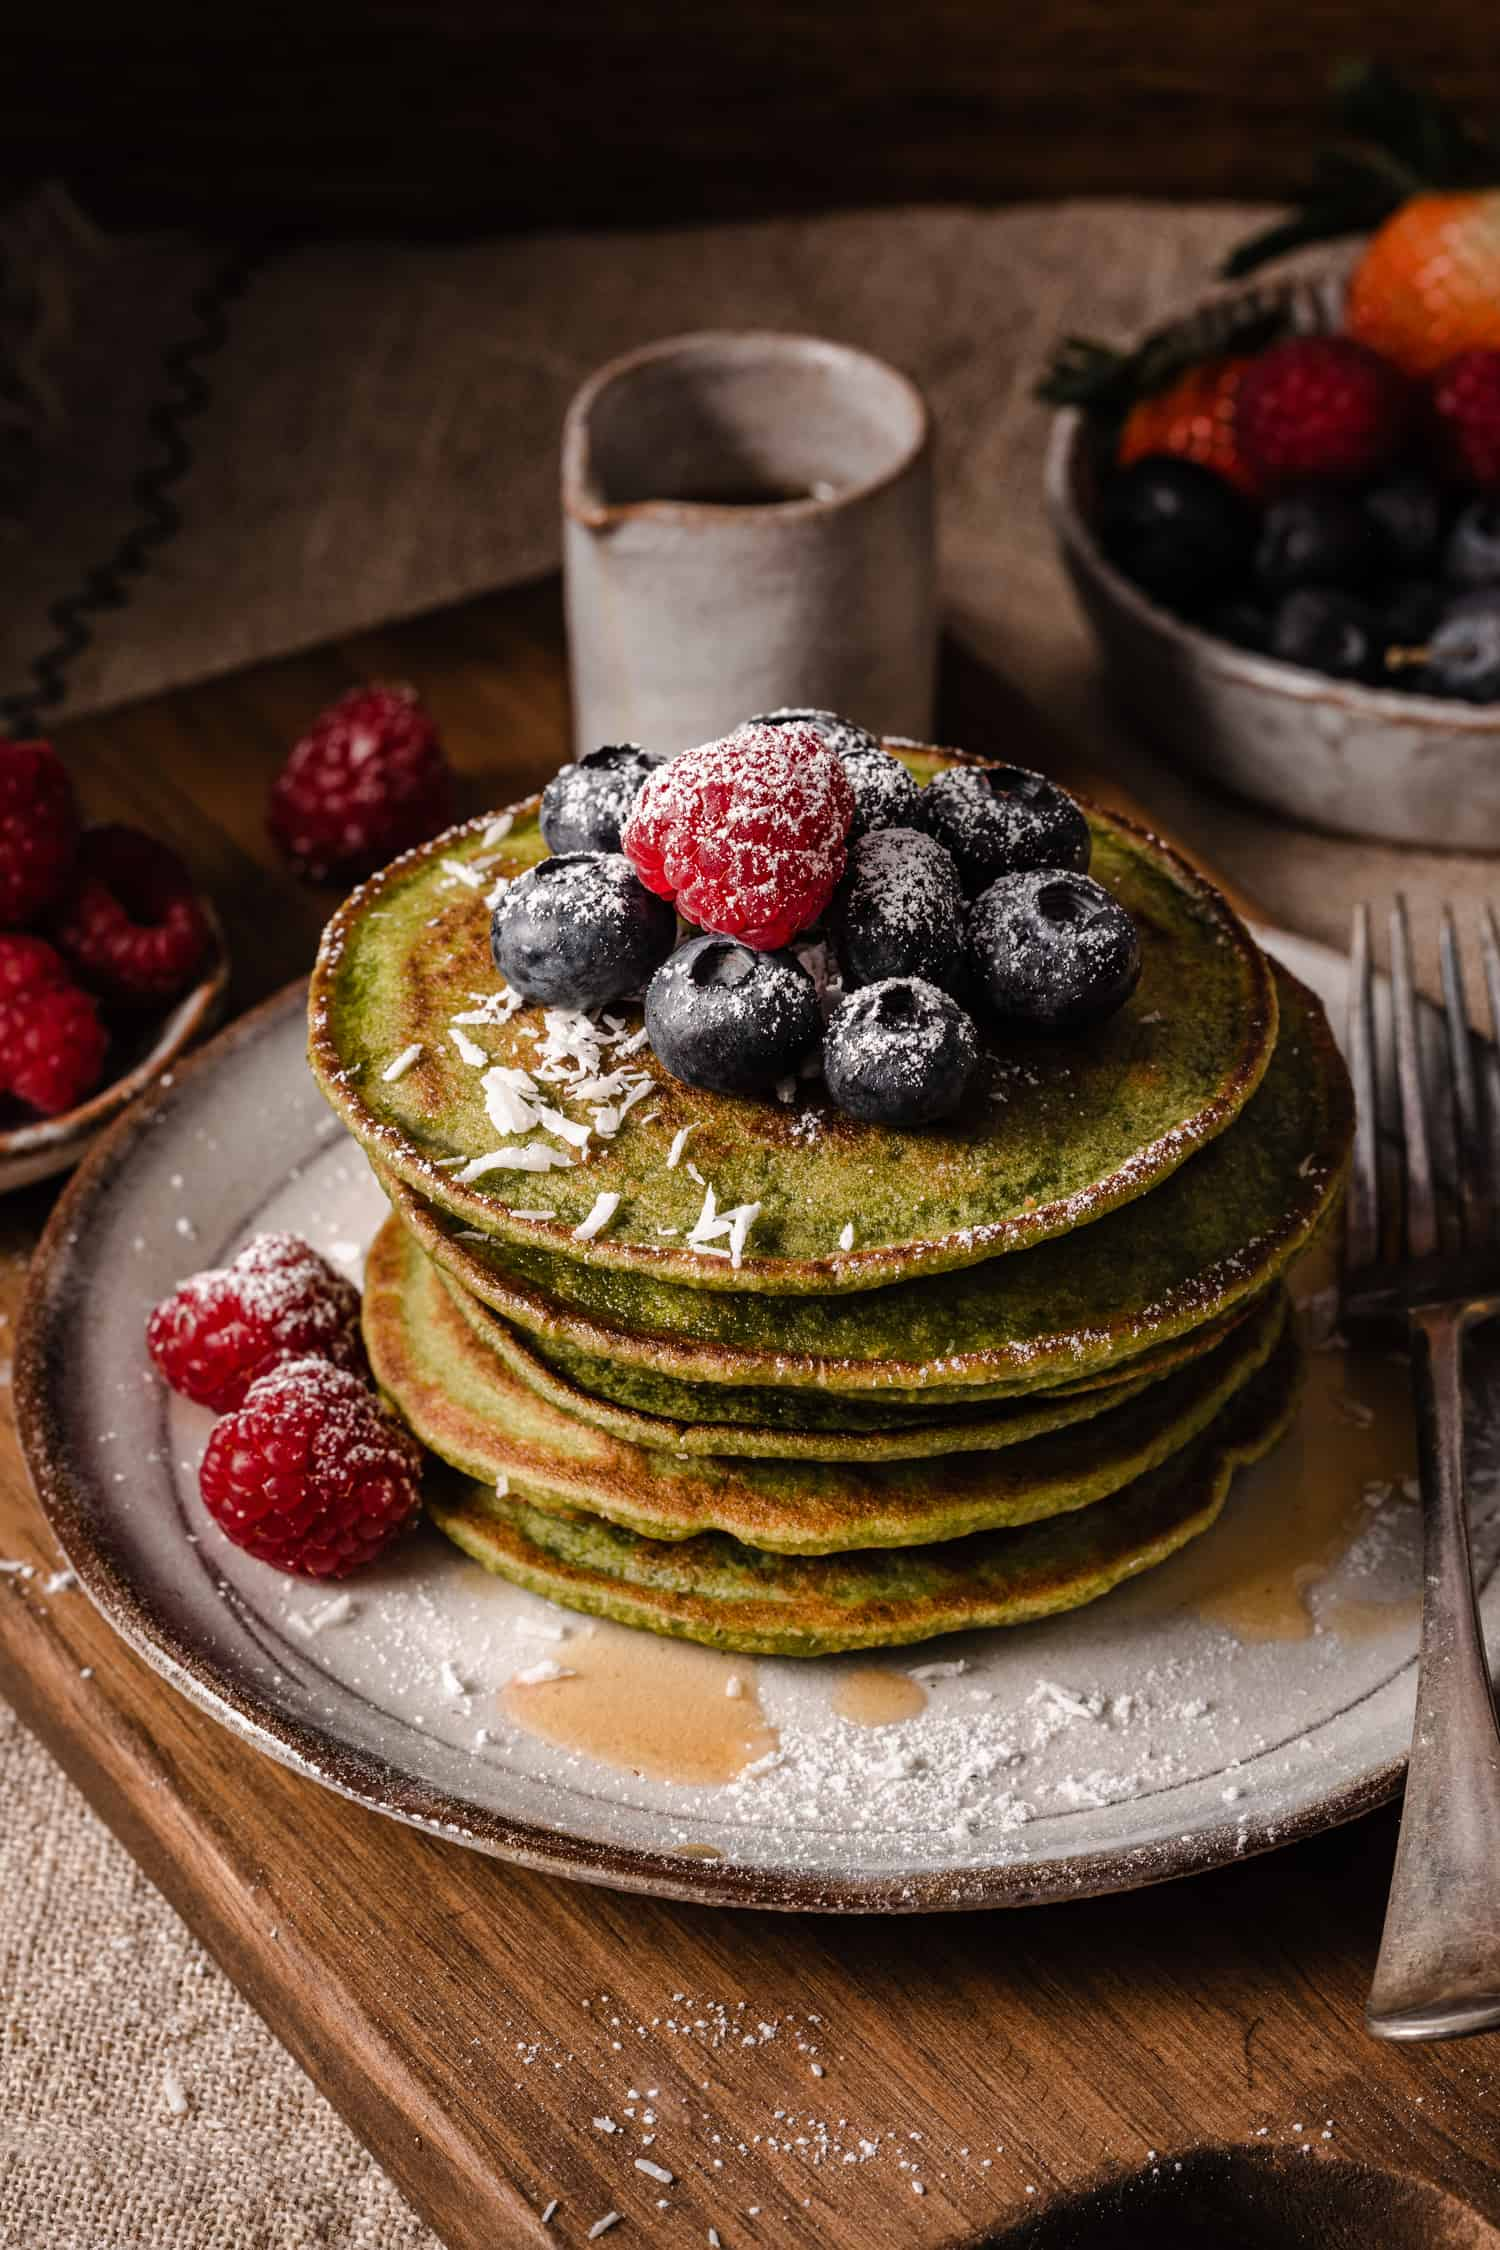 Super easy and quick healthy green pancakes with berries